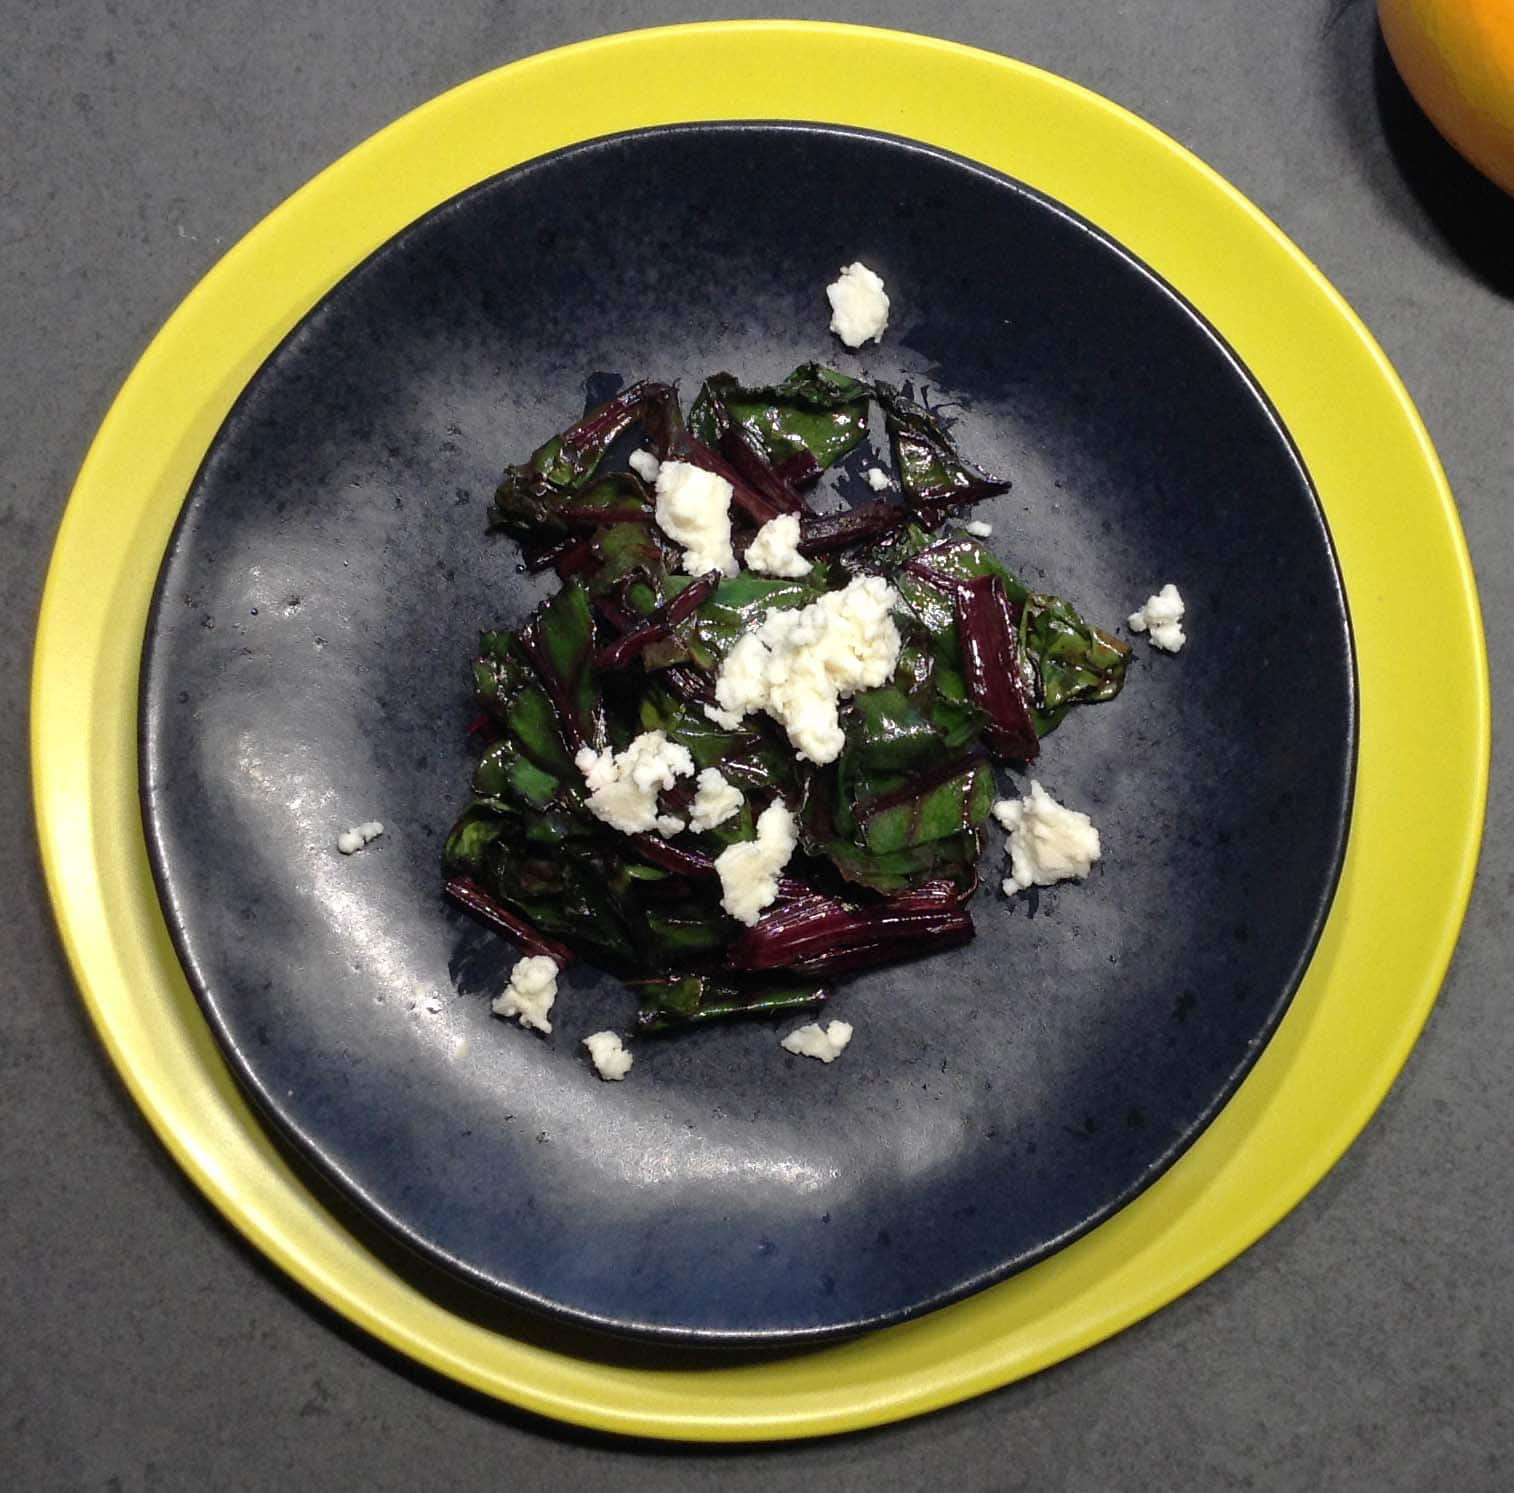 Fried Beet Top Salad with Honey Lemon Queso Freso Dressing